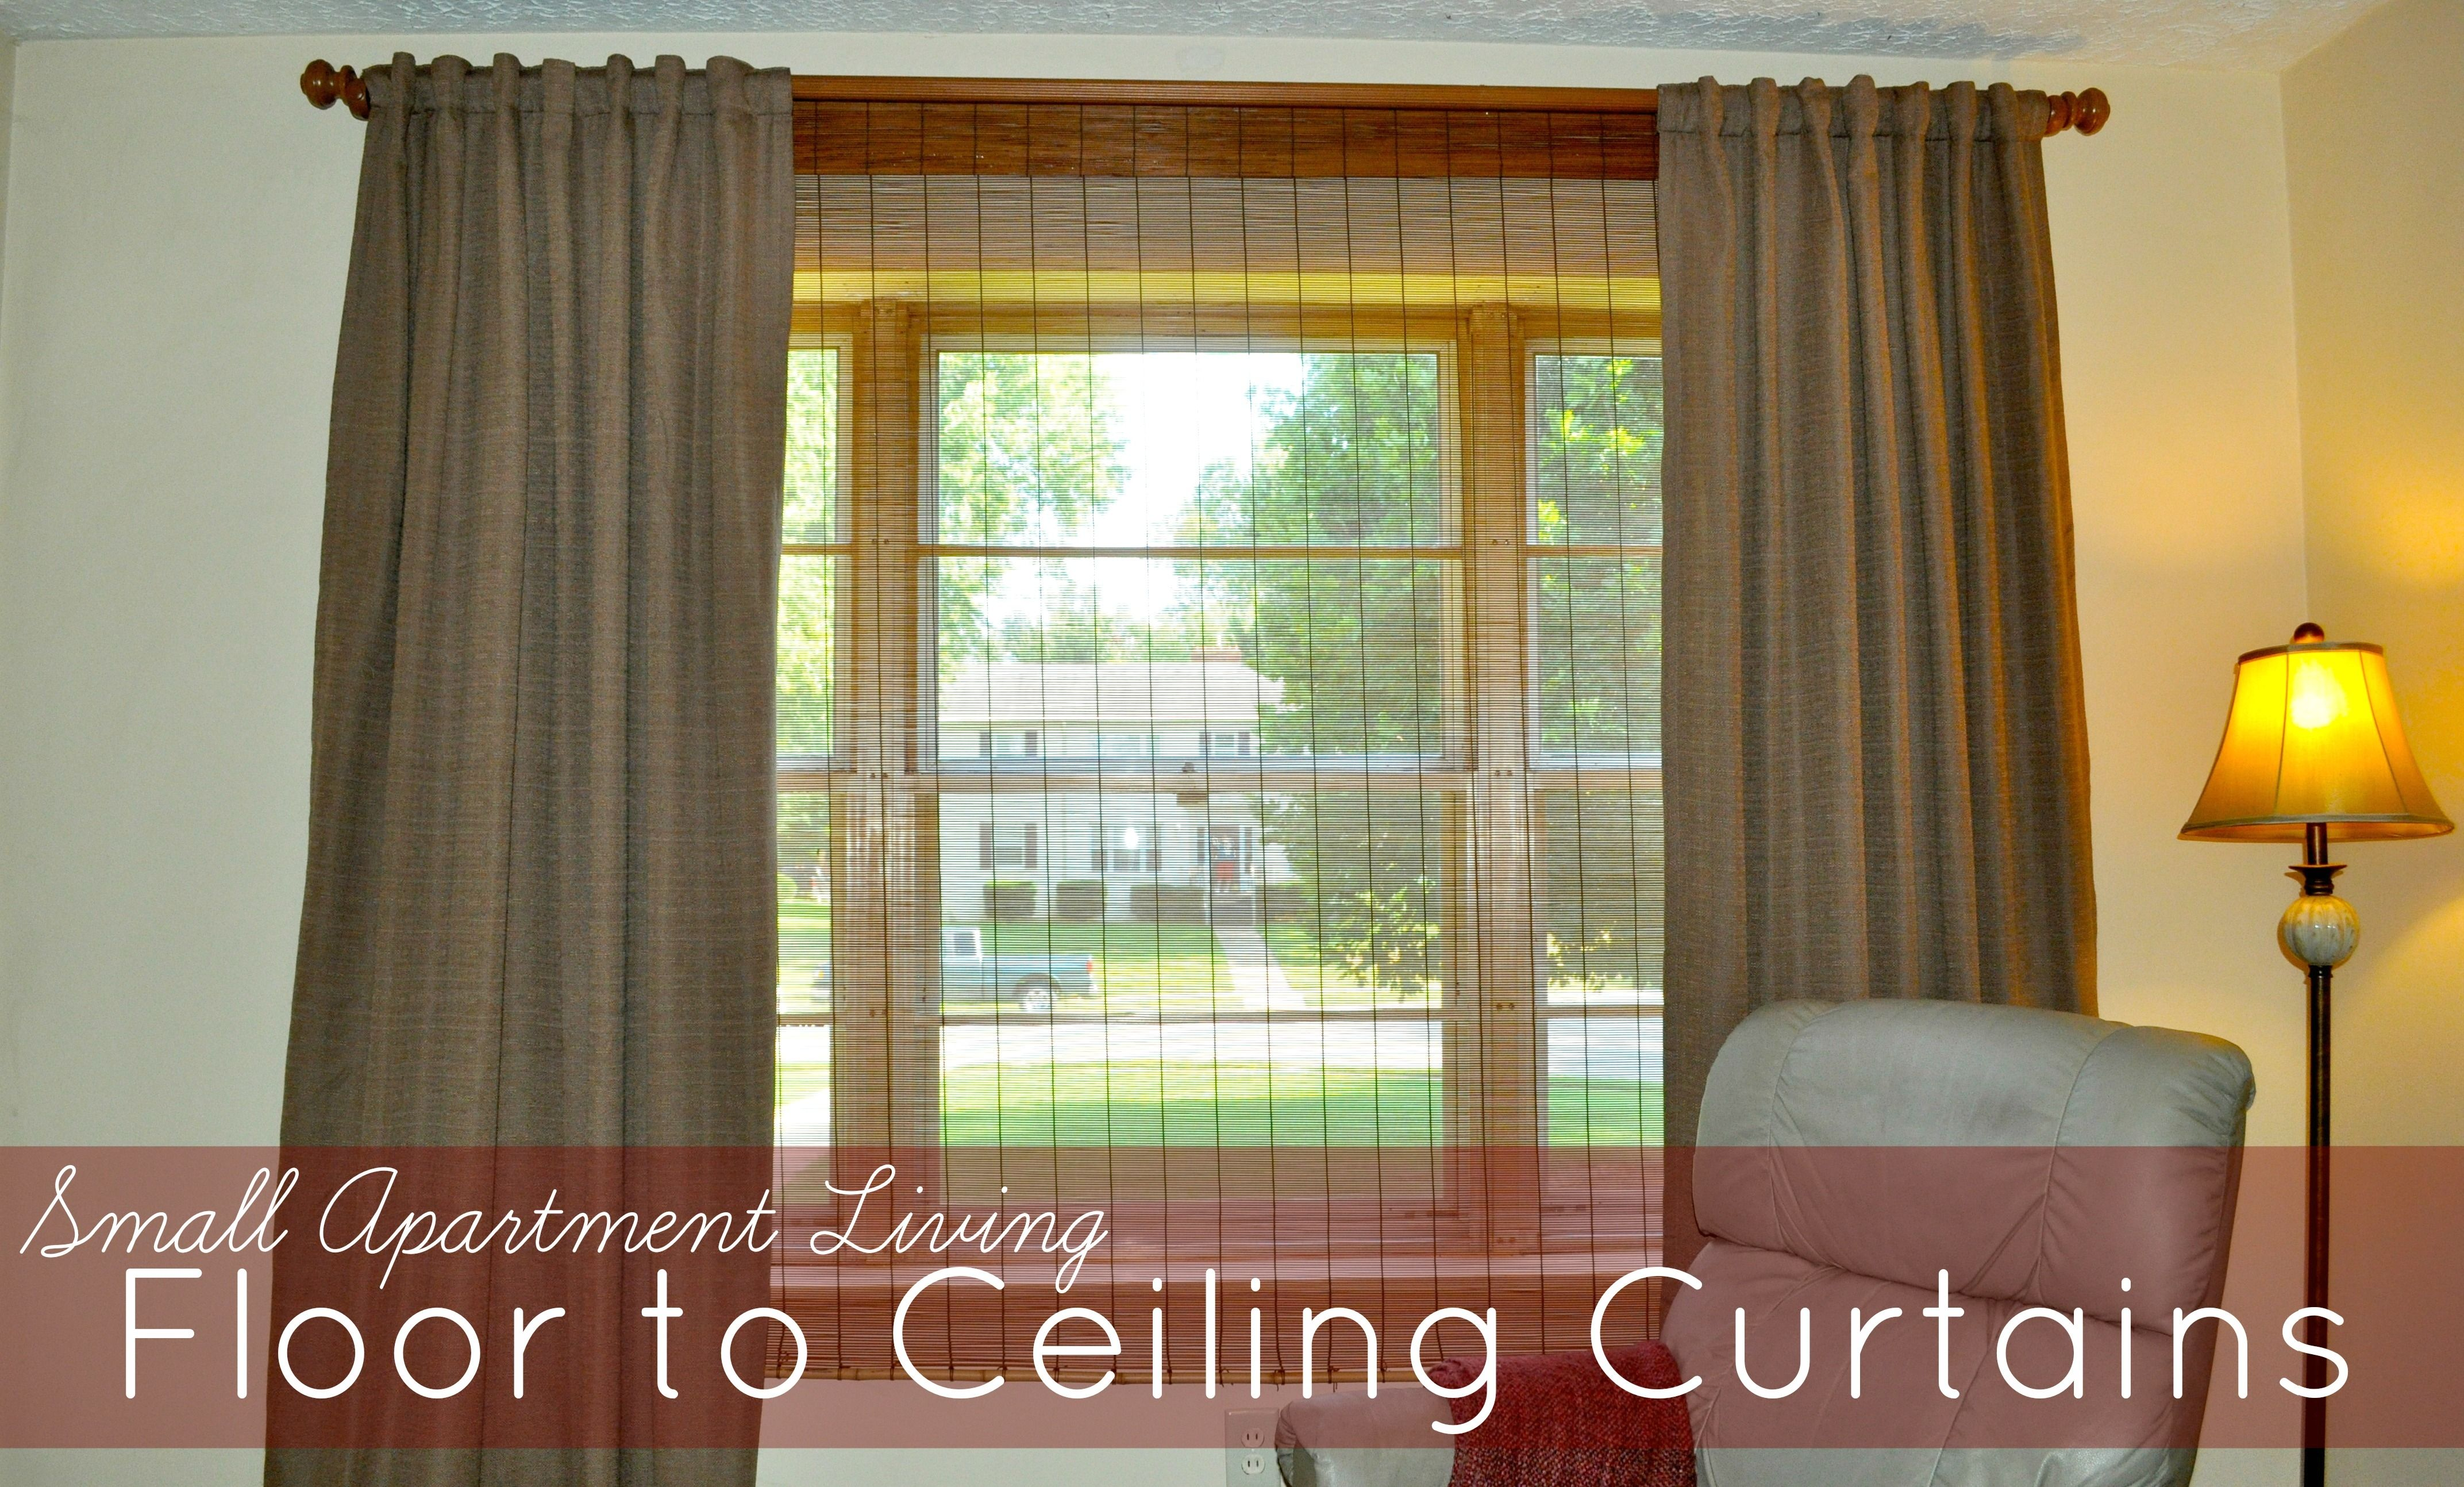 Creative window coverings  curtains for small apartment windows  realtagfo